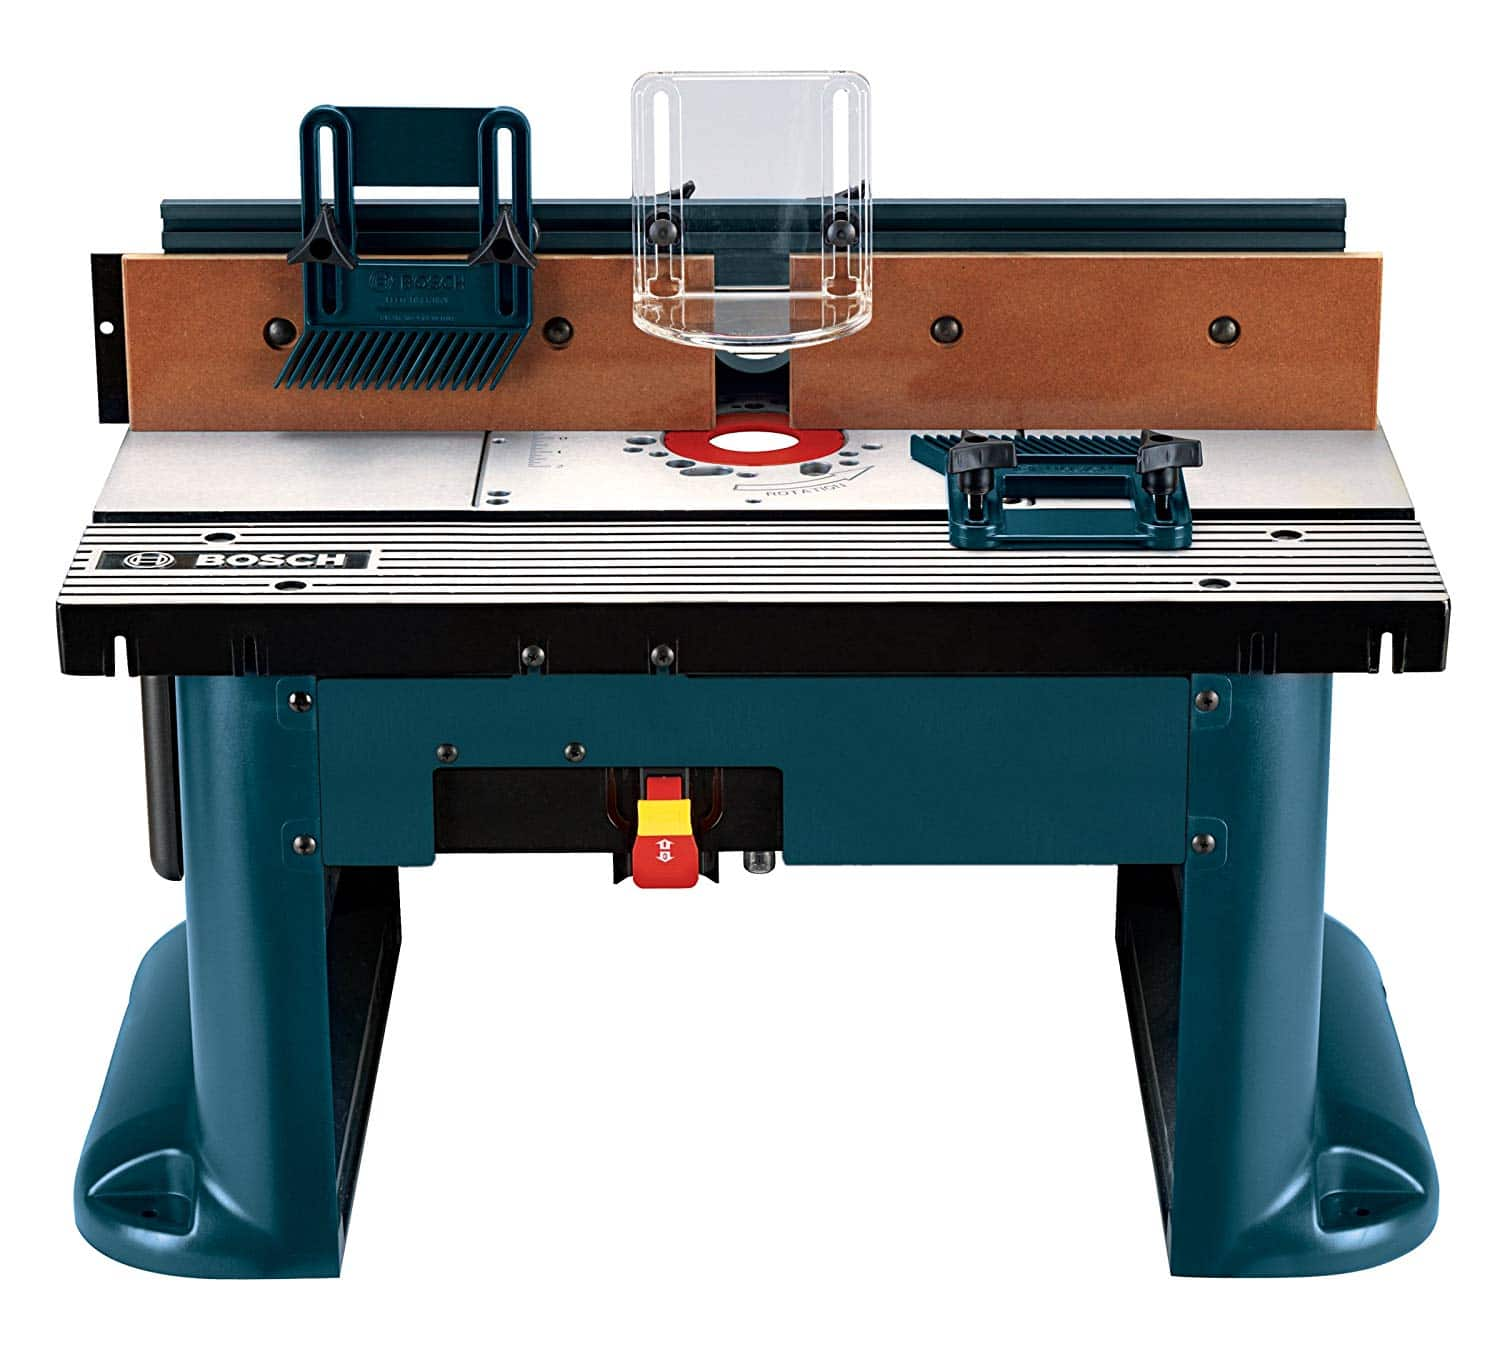 Bosch benchtop router table slickdeals deal image greentooth Image collections